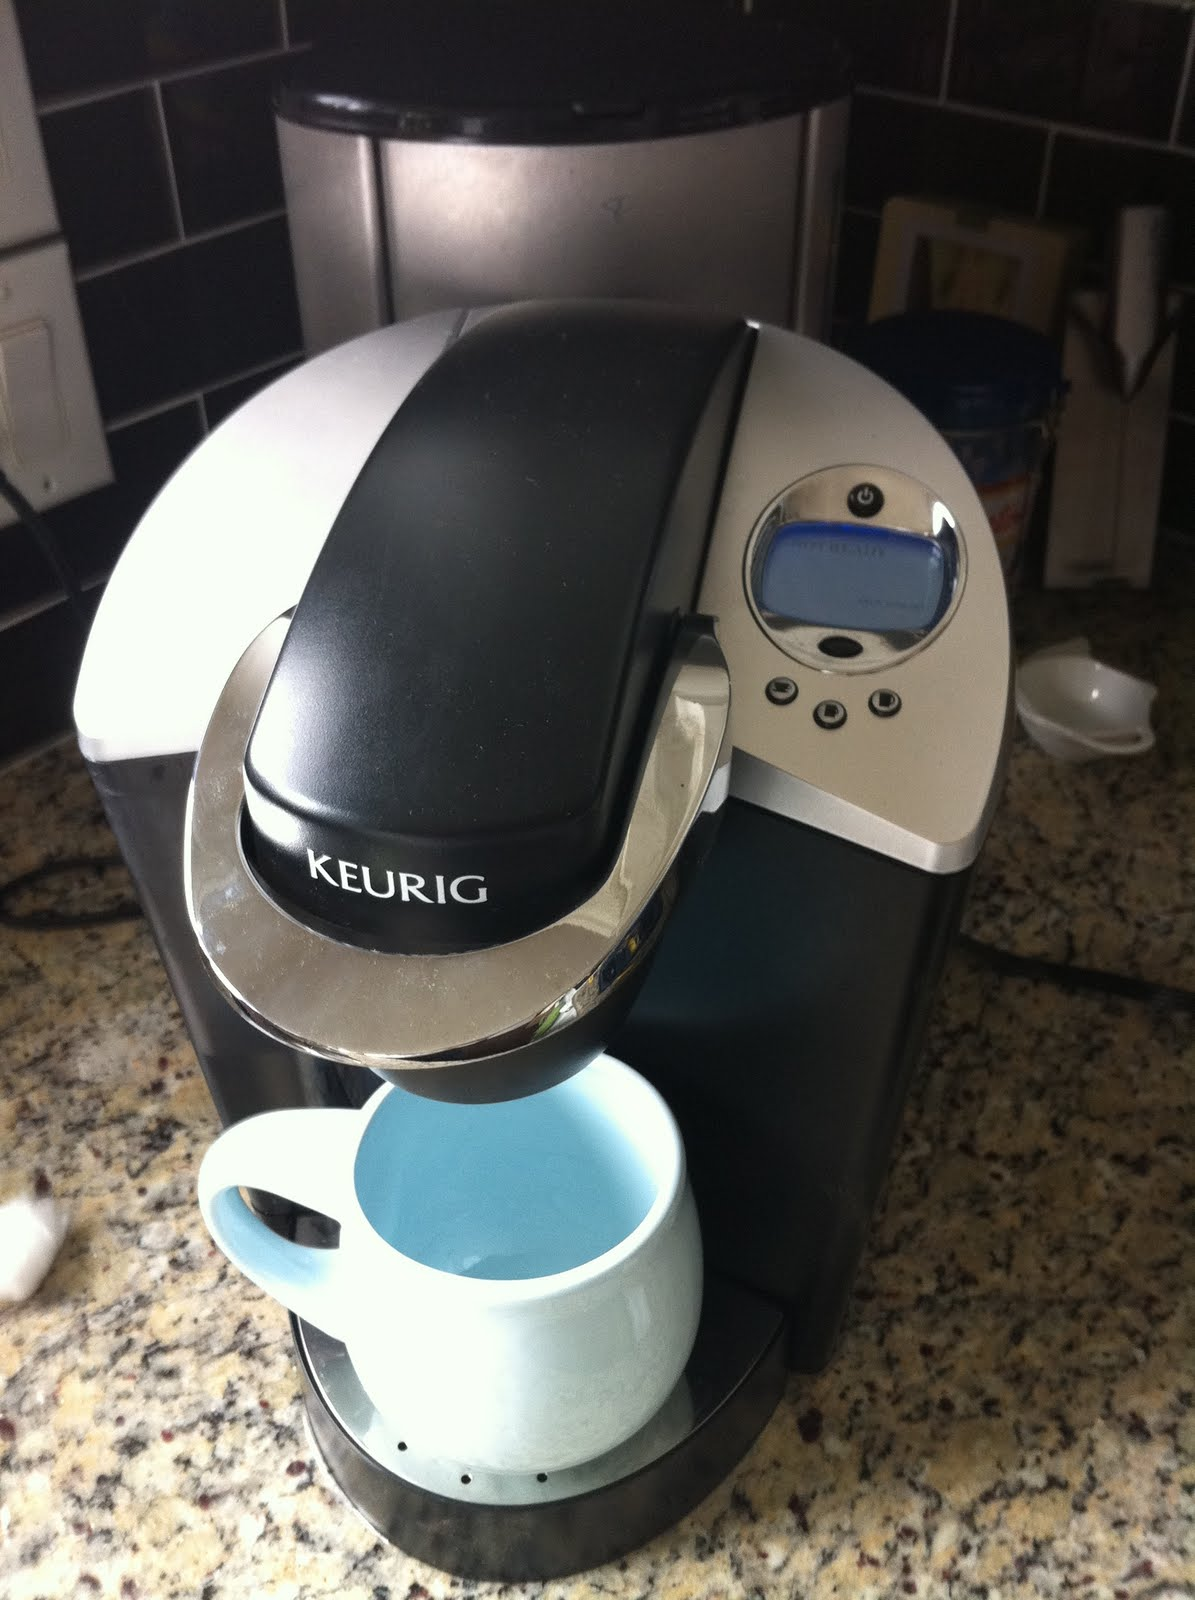 Keurig Coffee Maker Sputtering : The Bleeding Edge: Fixing my Keurig B60 coffee maker